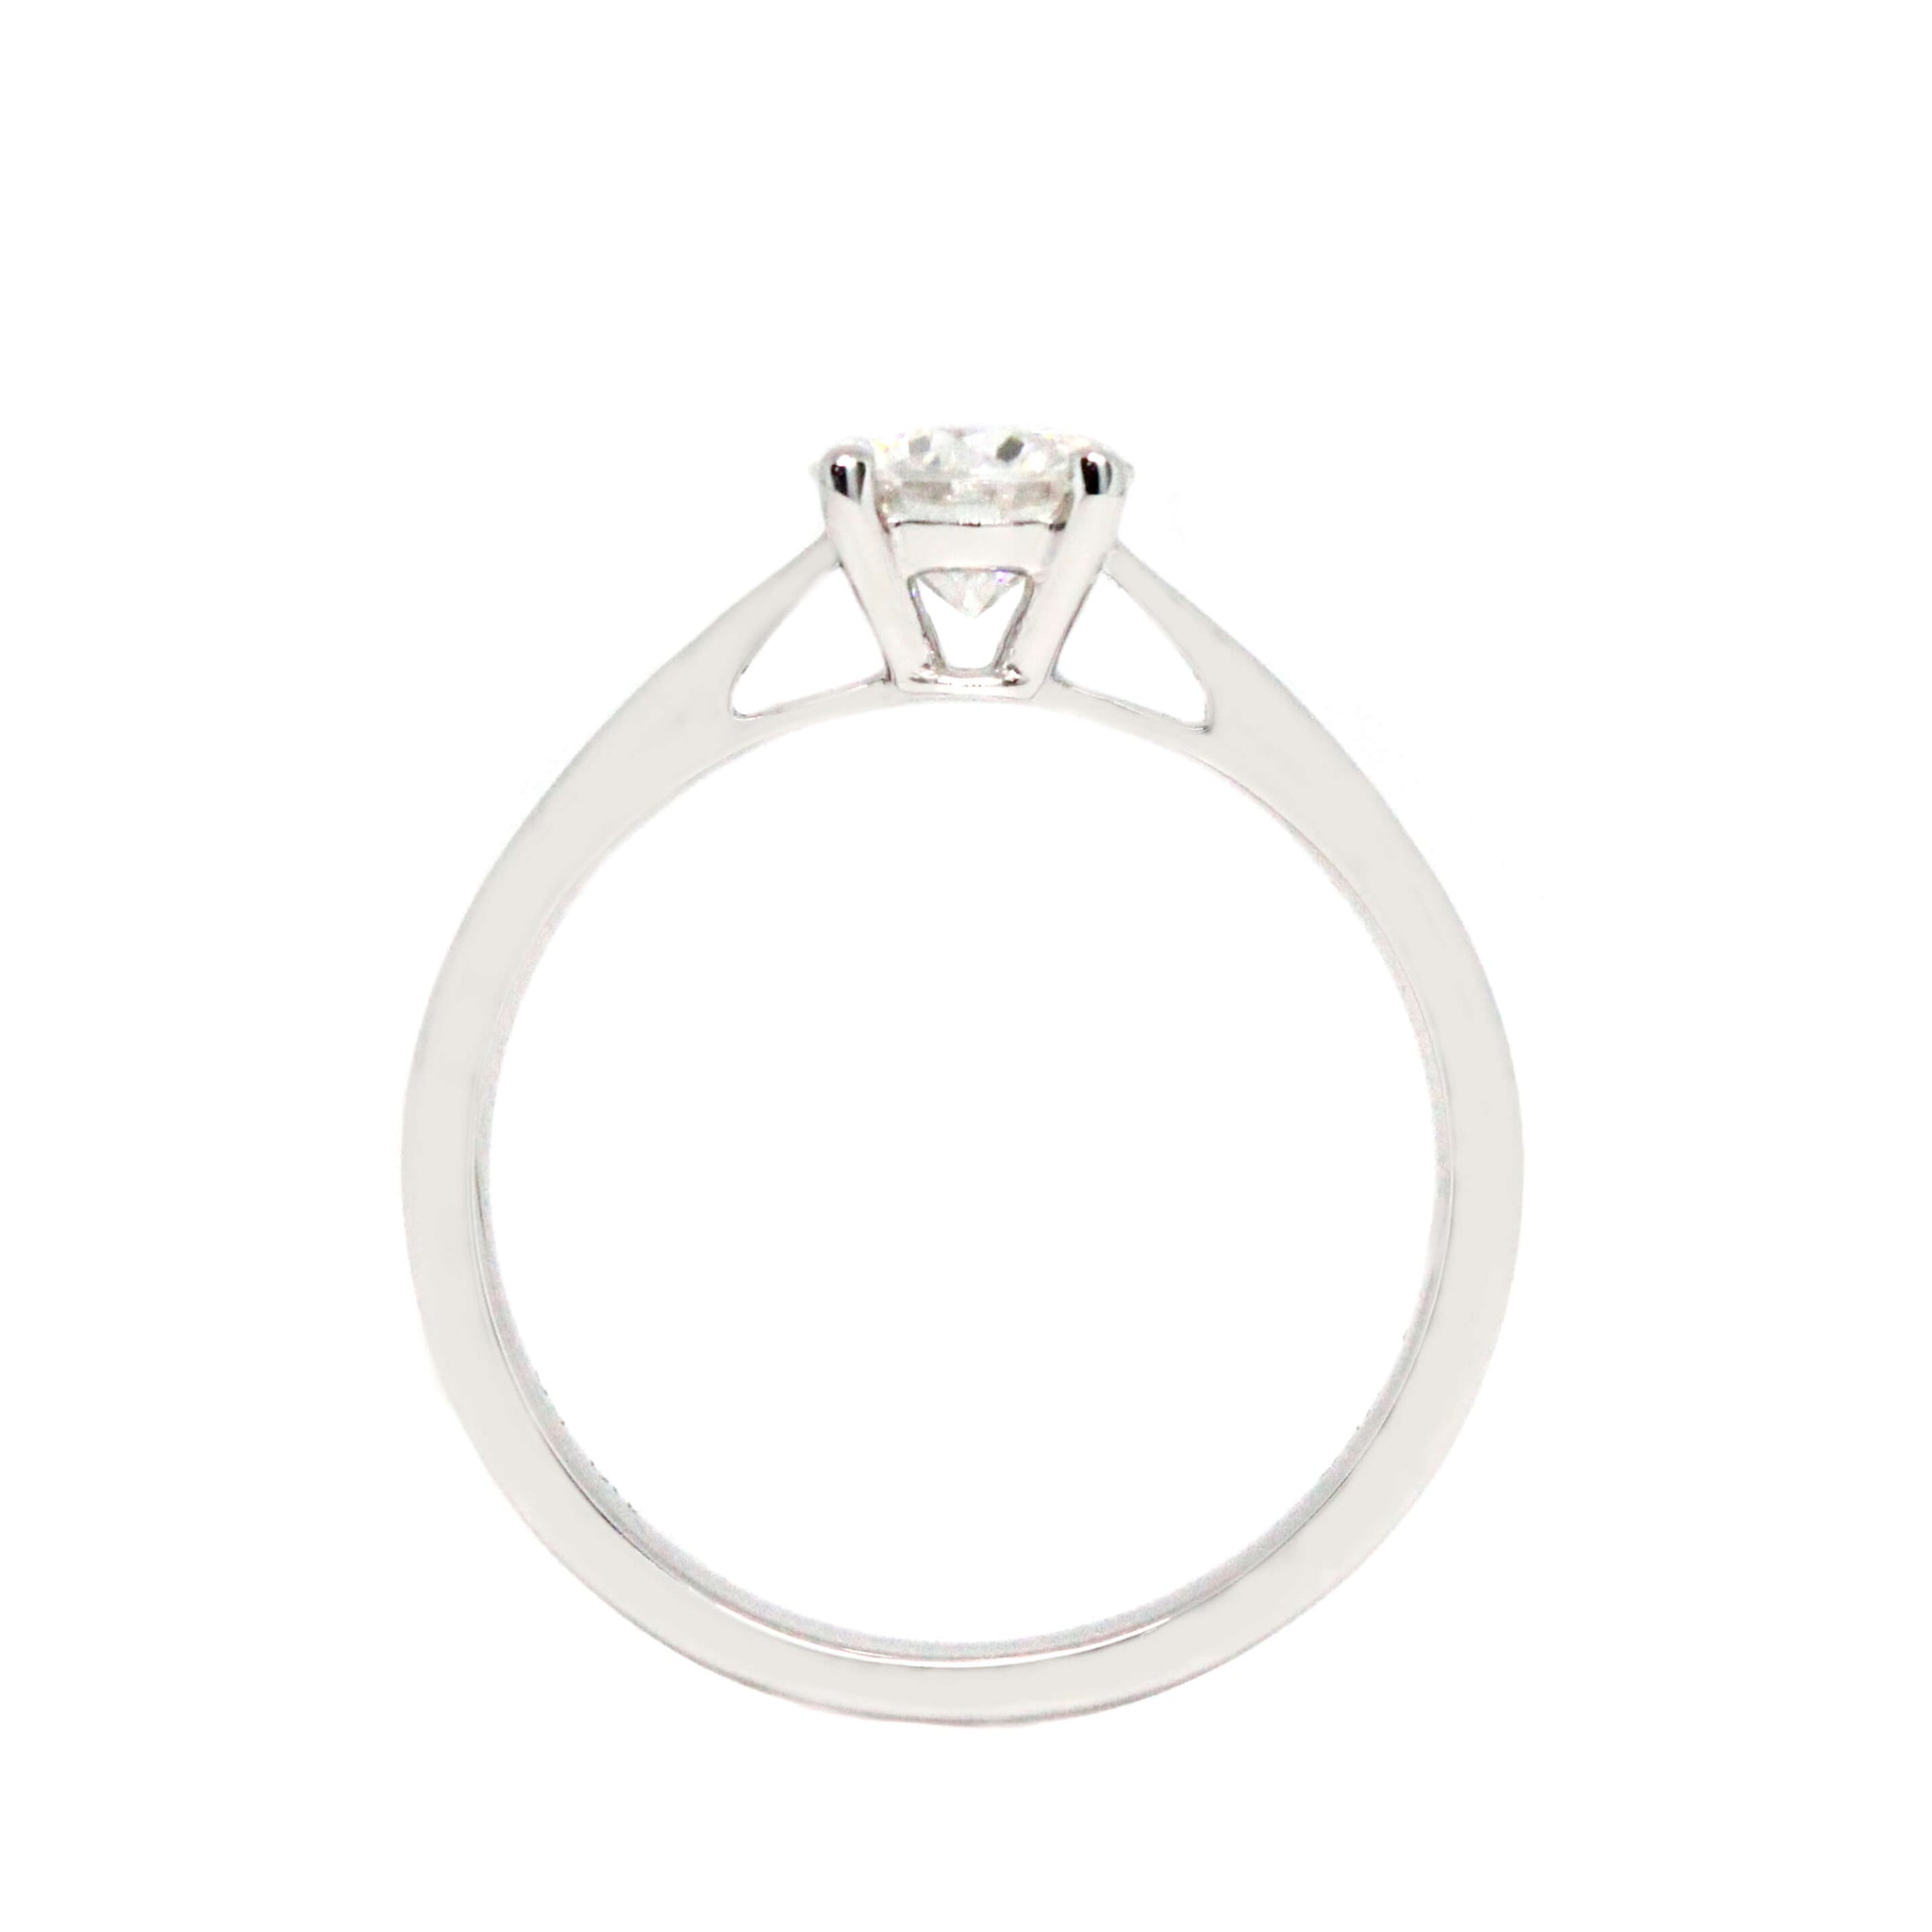 Alicia 0.5 Carat Moissanite 4 Prongs Cathedral Setting